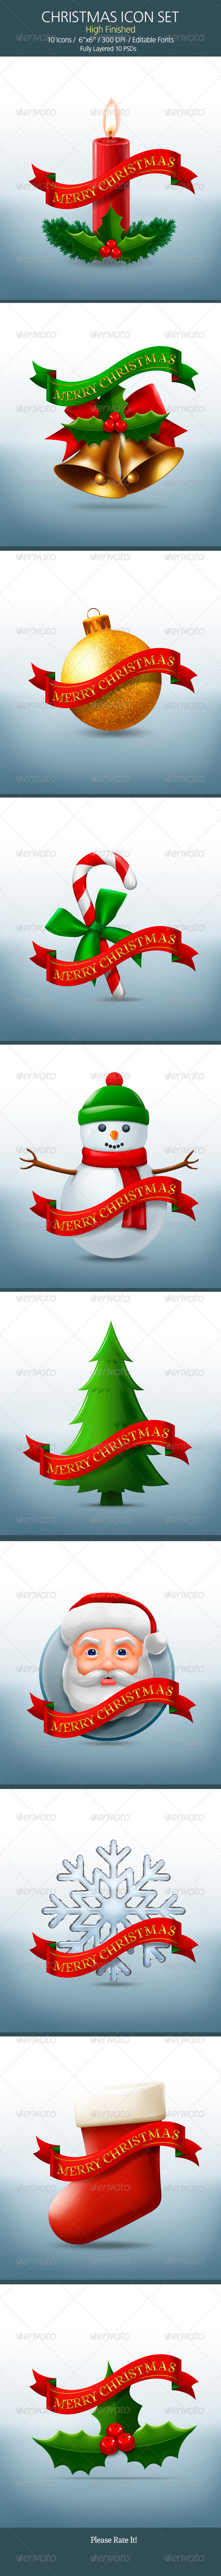 GraphicRiver 10 Christmas Icon Set 3315520